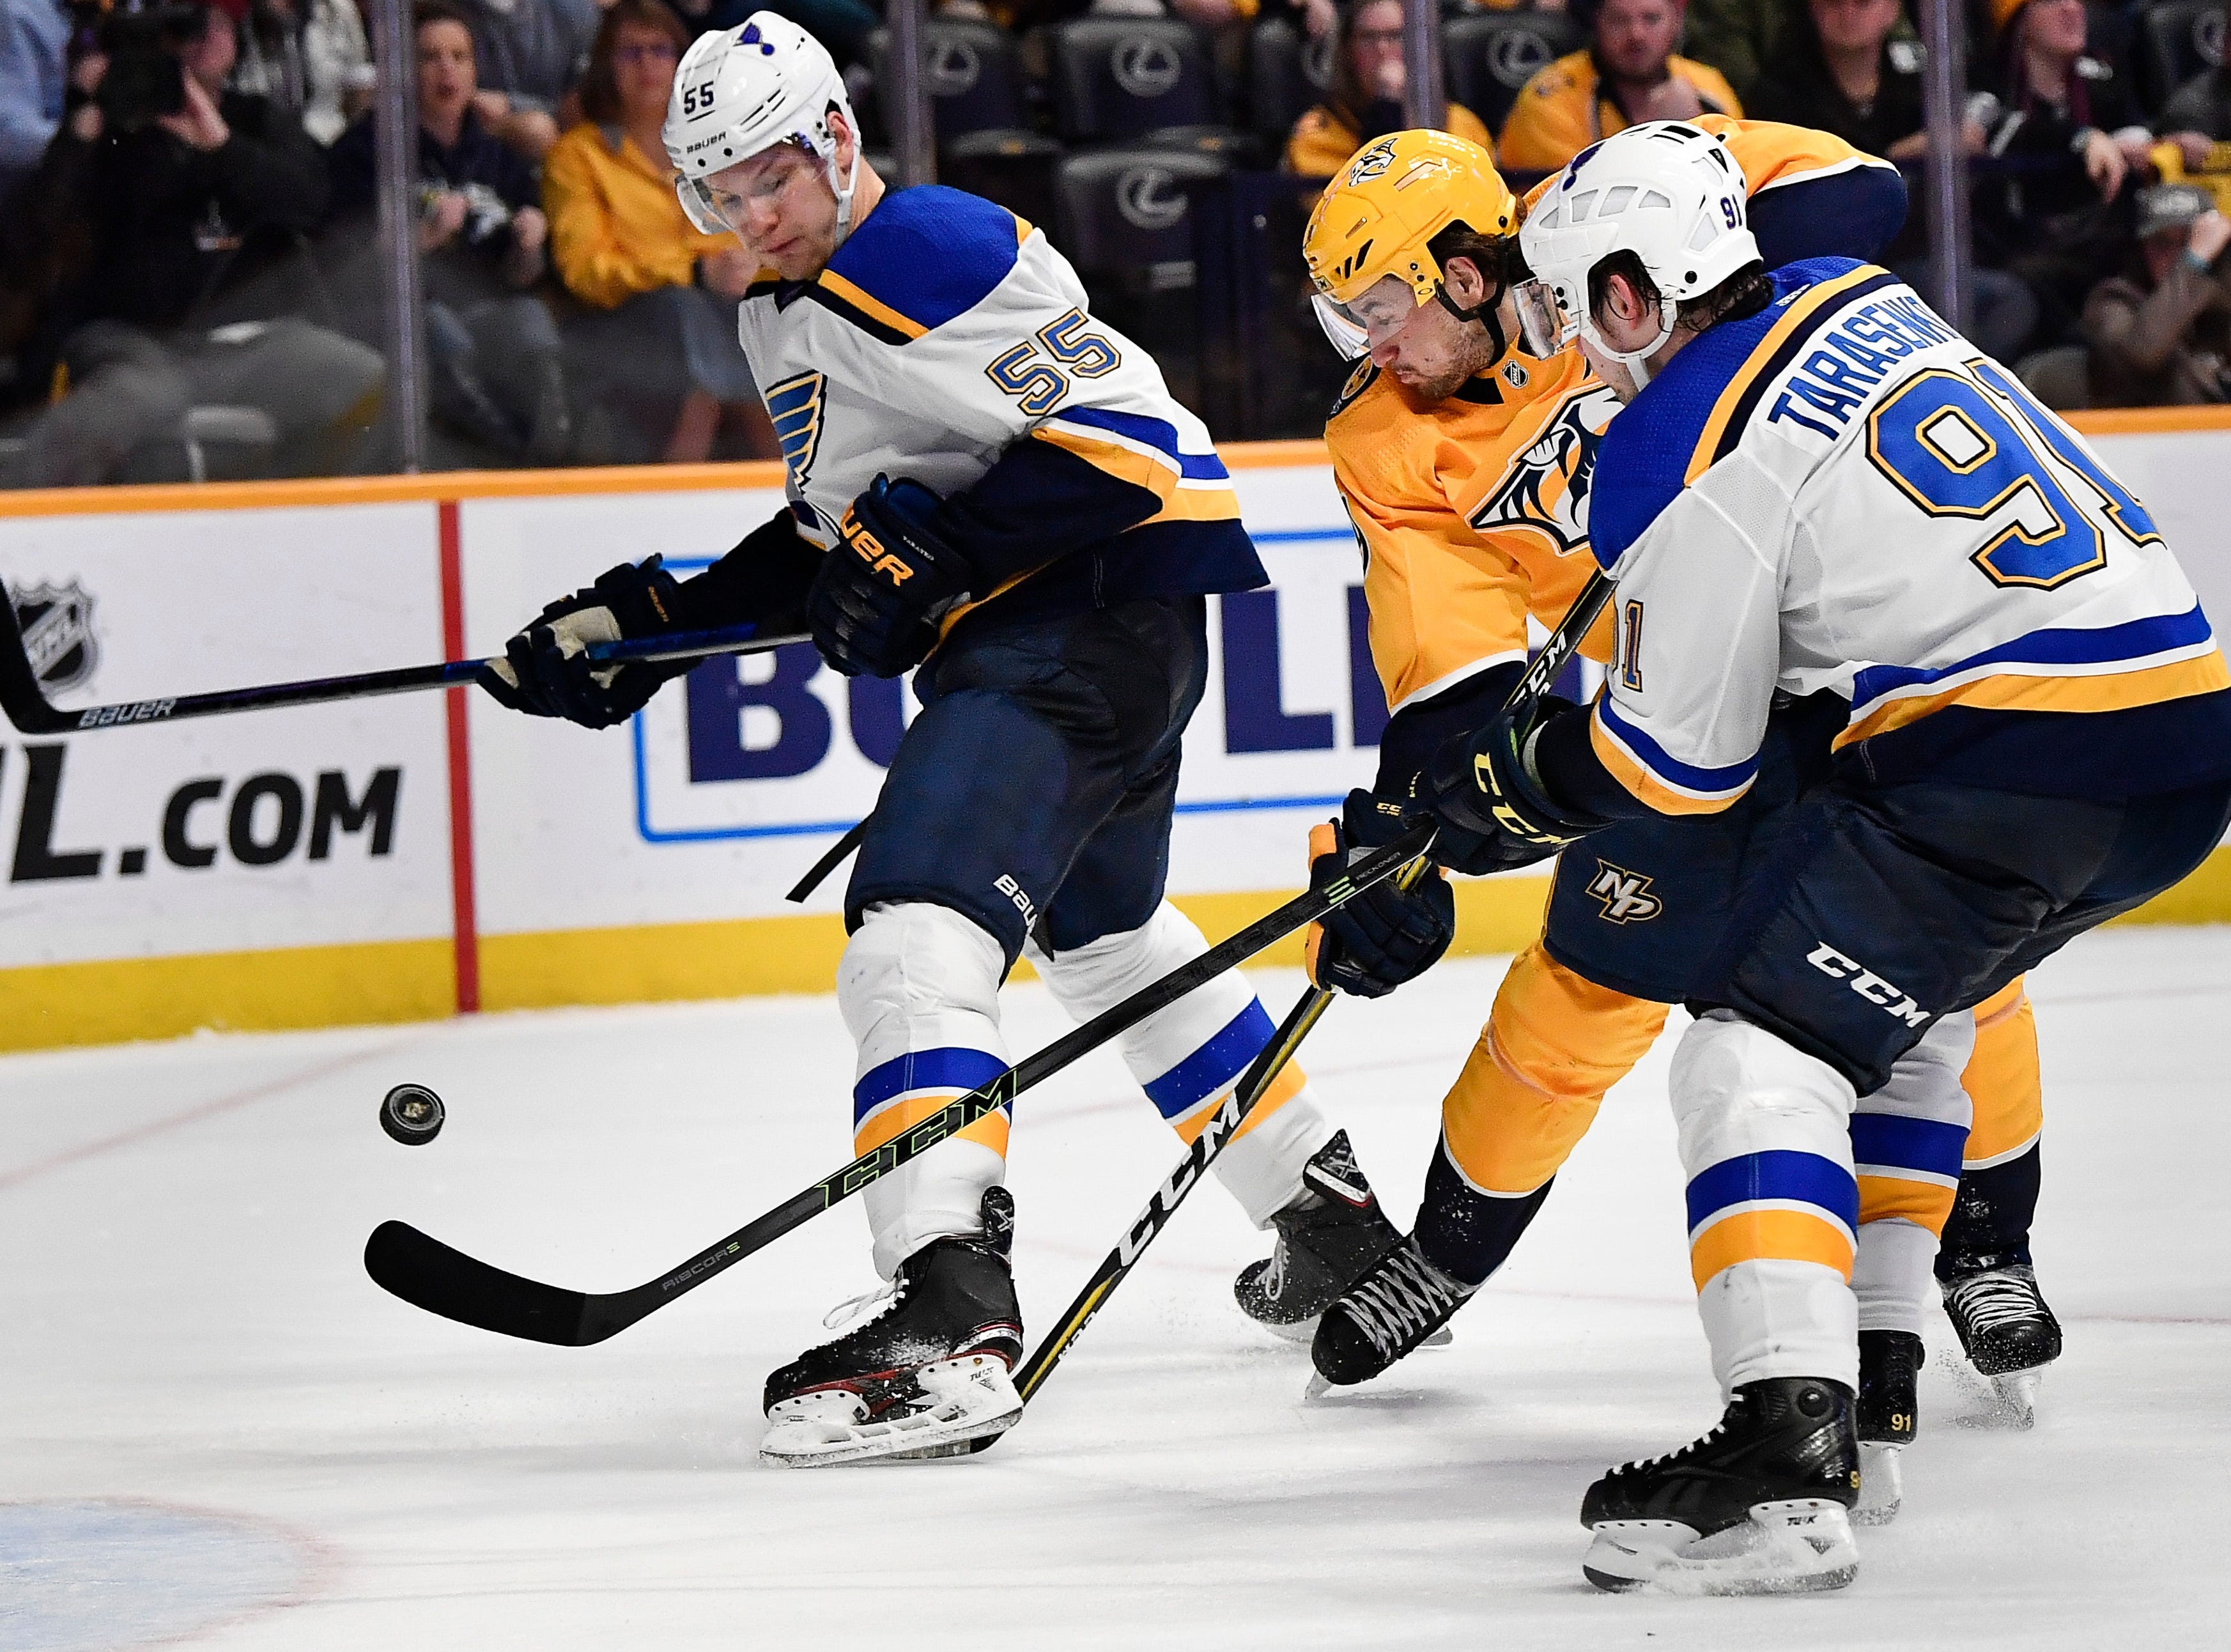 Predators left wing Filip Forsberg (9) shoots a goal past Blues defenseman Colton Parayko (55) and right wing Vladimir Tarasenko (91) during the third period at Bridgestone Arena Sunday Feb. 10, 2019 in Nashville, Tenn.